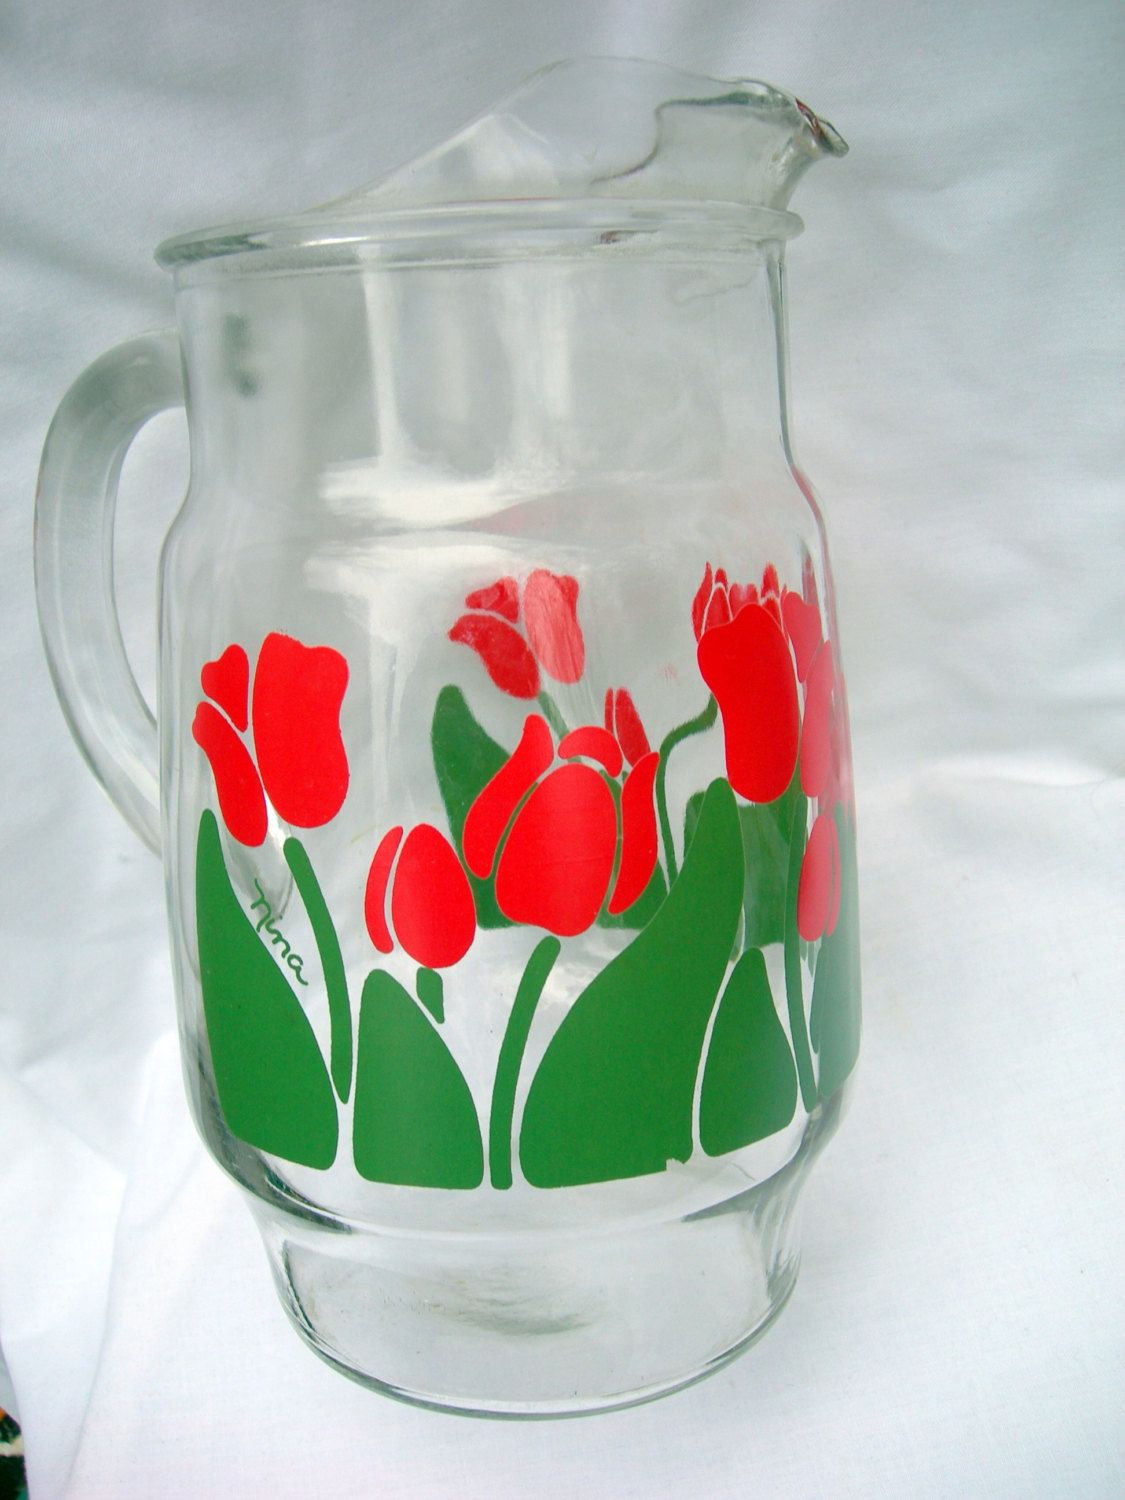 Vintage Glass Pitcher With Red Tulips By Nina Larger Size Etsy Vintage Glass Pitchers Red Tulips Pitcher